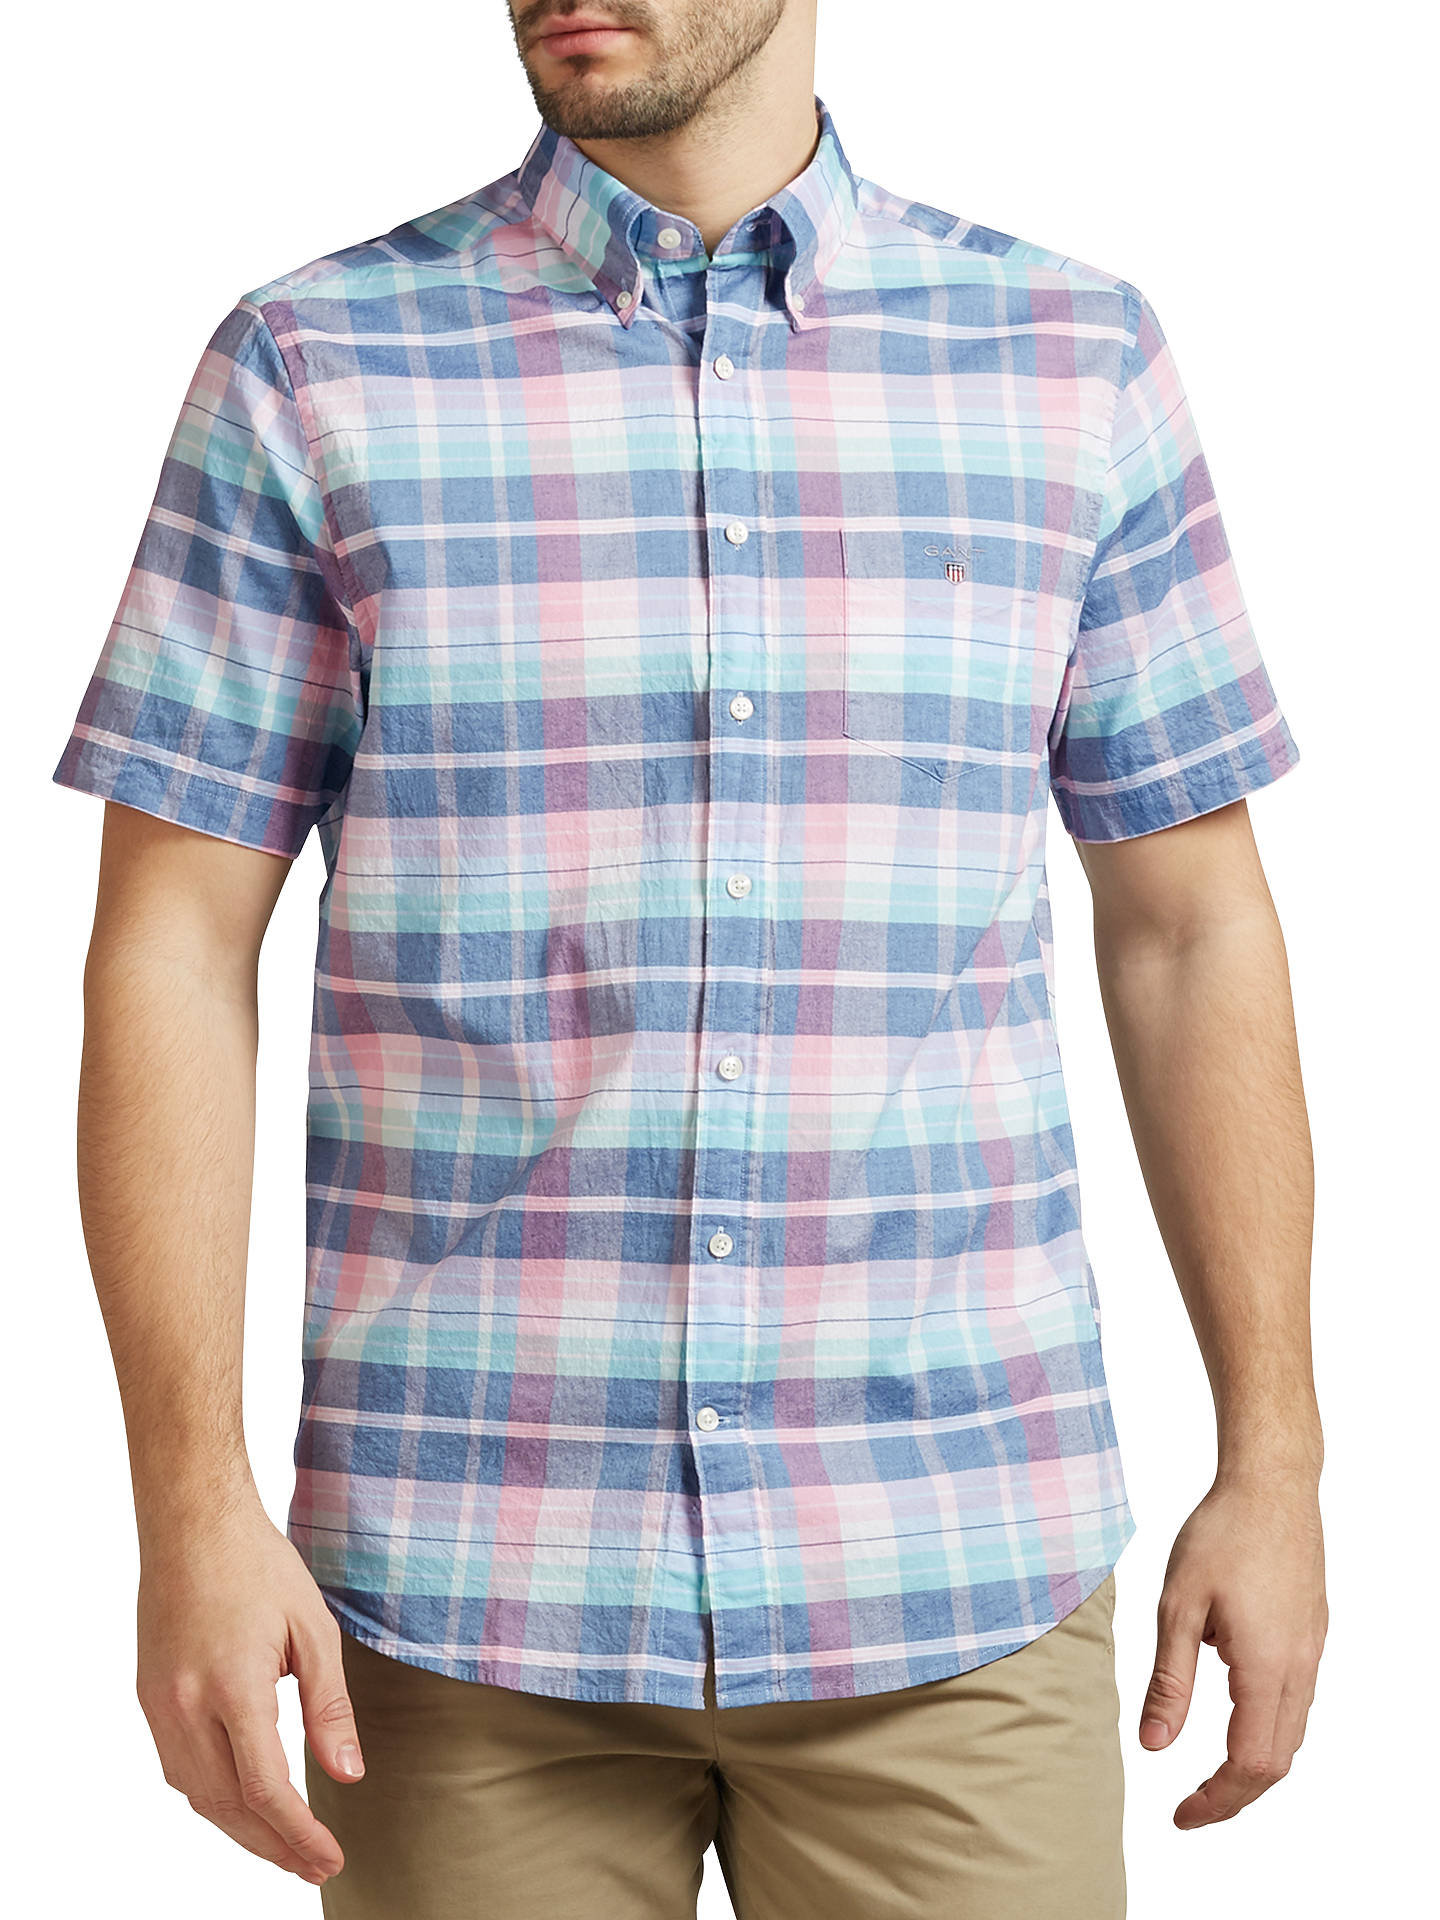 c727845b2f Buy Gant Madras Short Sleeve Plaid Cotton Shirt, Persian Blue, S Online at  johnlewis ...